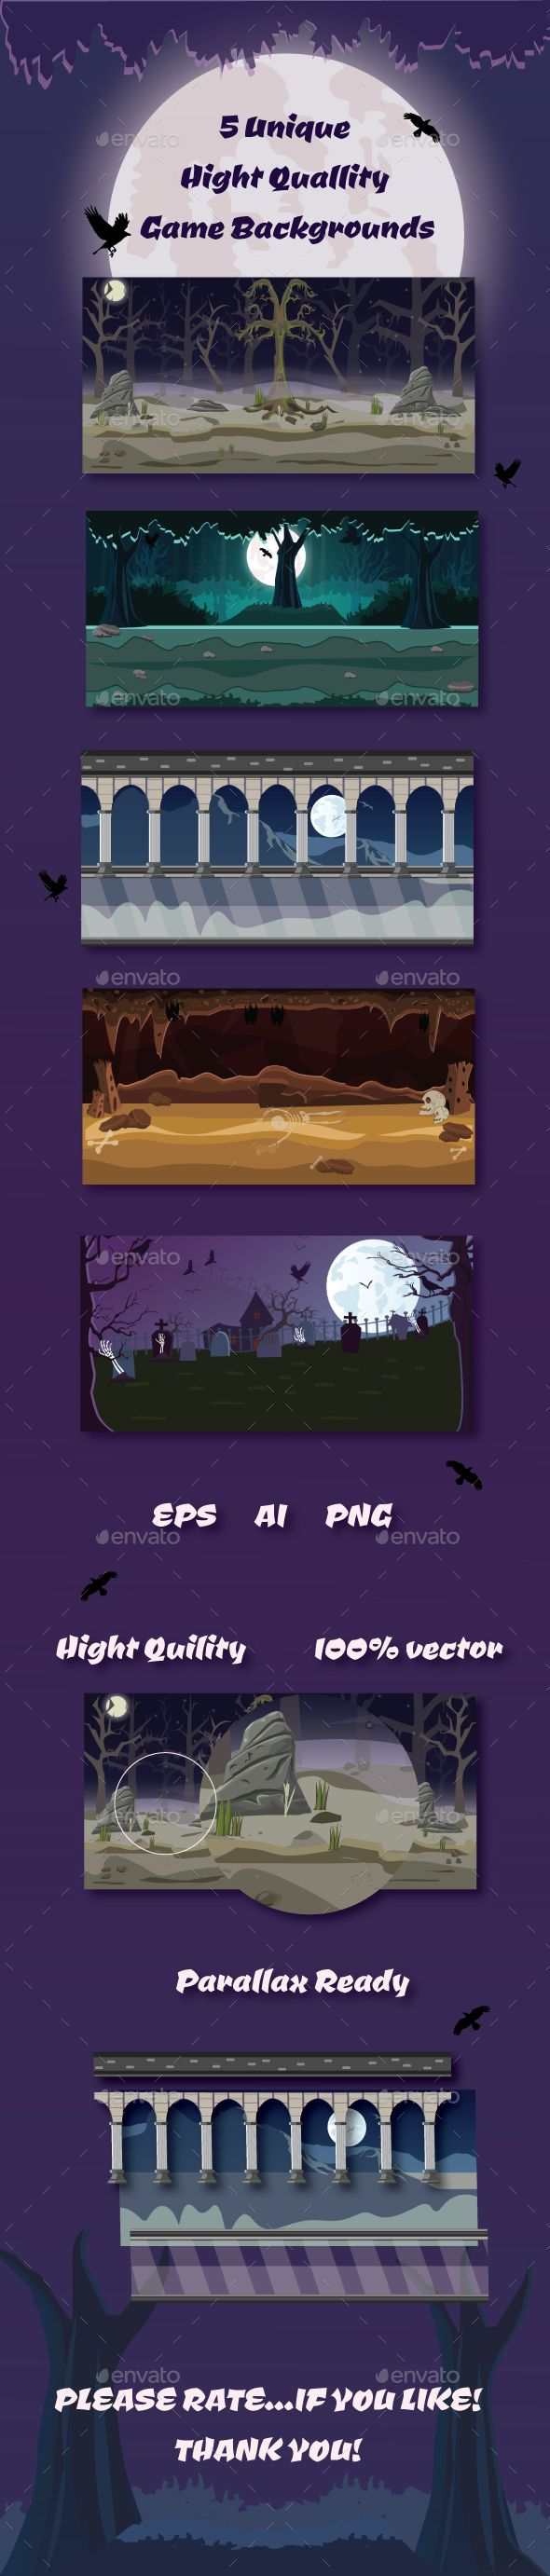 Horror Game Background Pack Download here: https://graphicriver.net/item/horror-game-background-pack/14867189?ref=KlitVogli